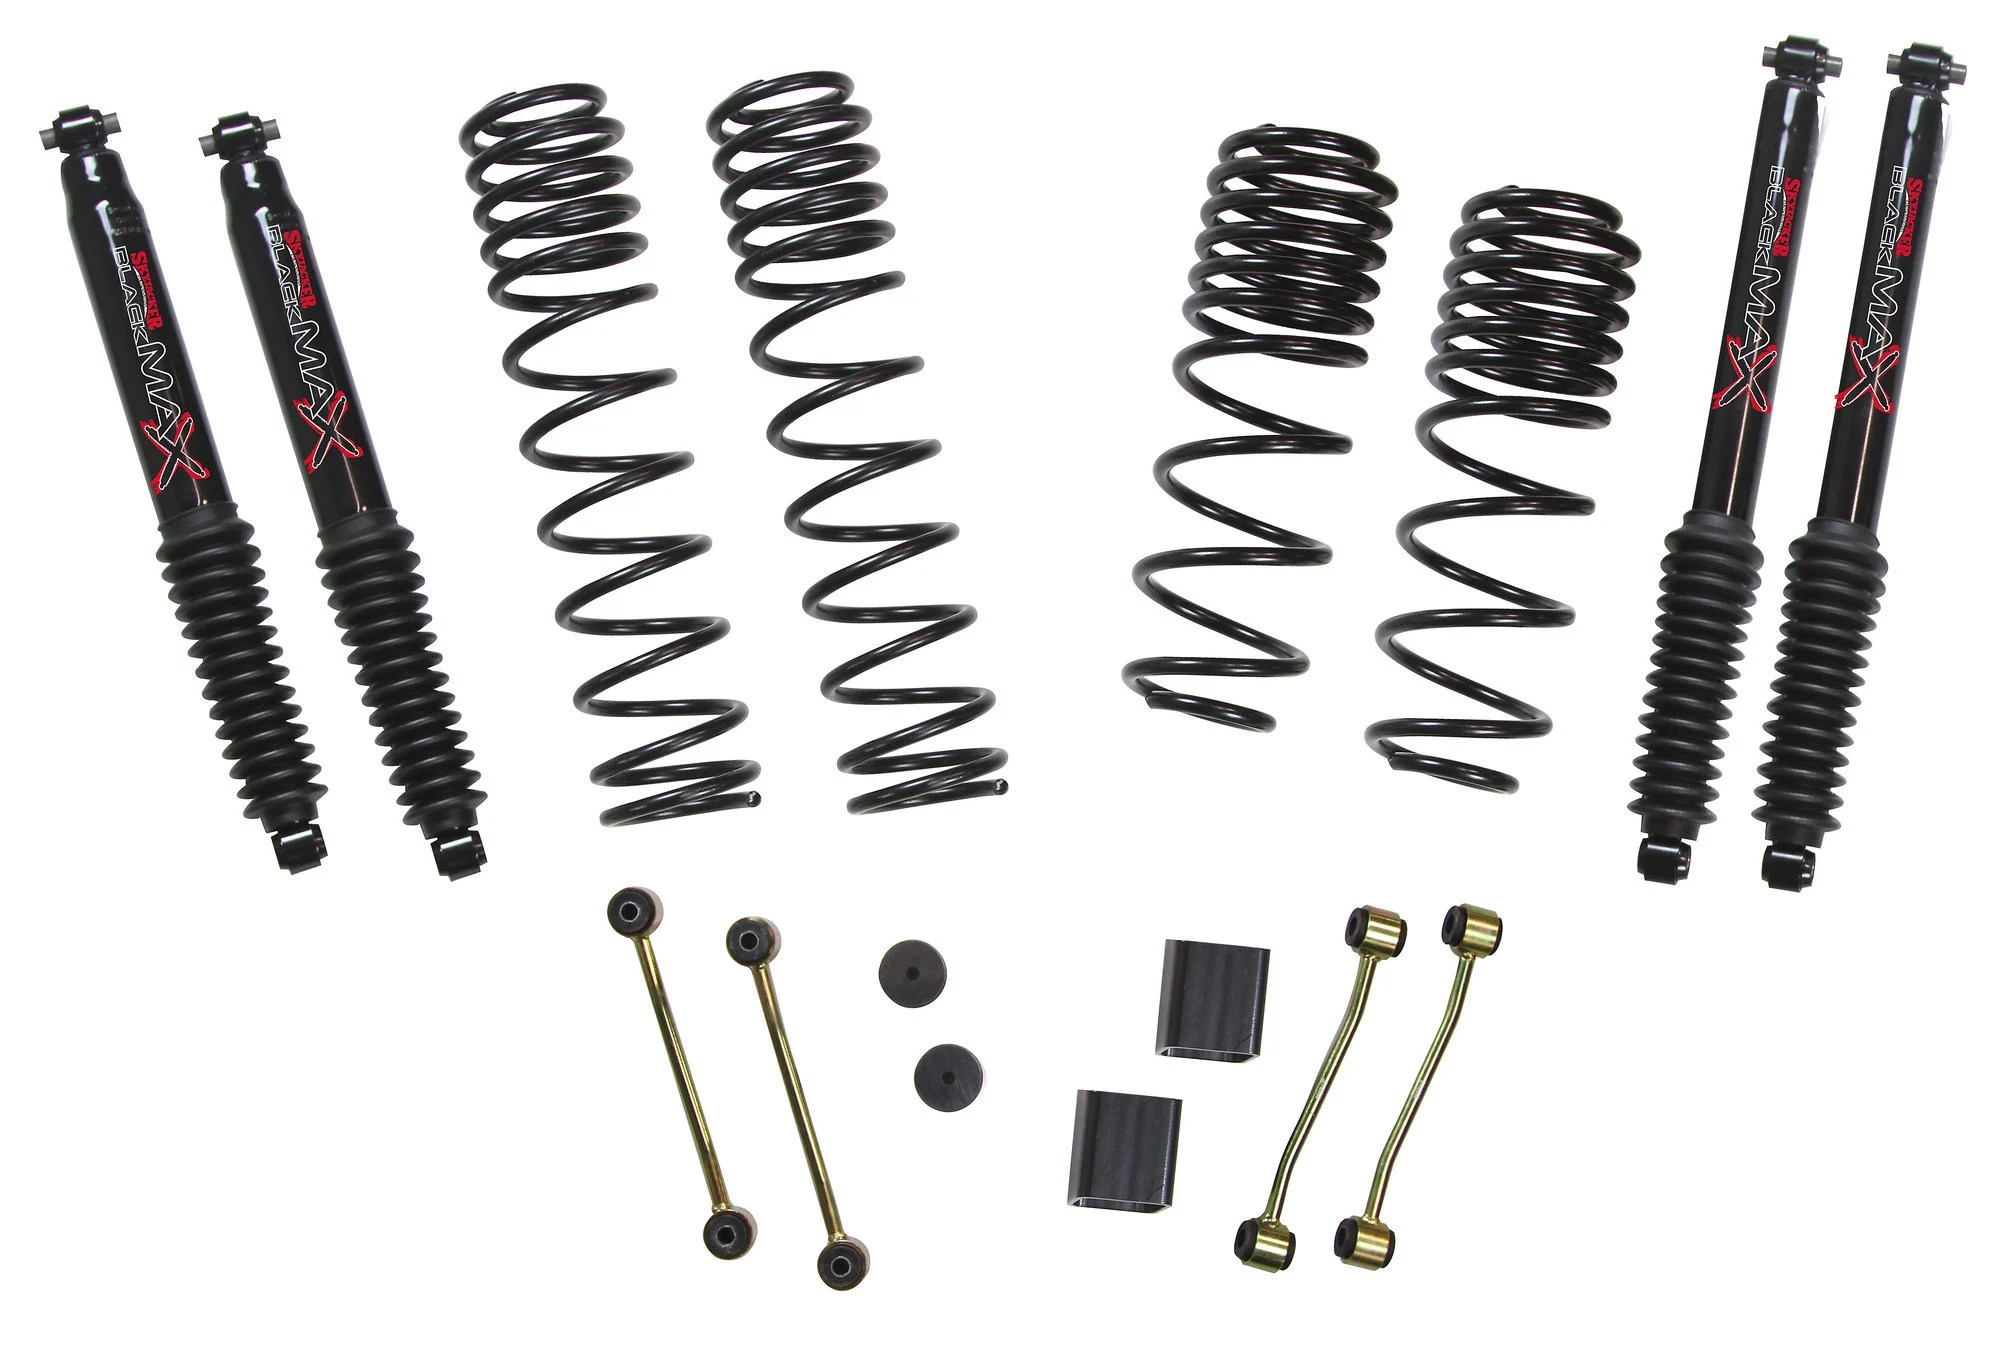 Skyjacker 2 5in Long Travel Lift Kit With Black Max Shocks